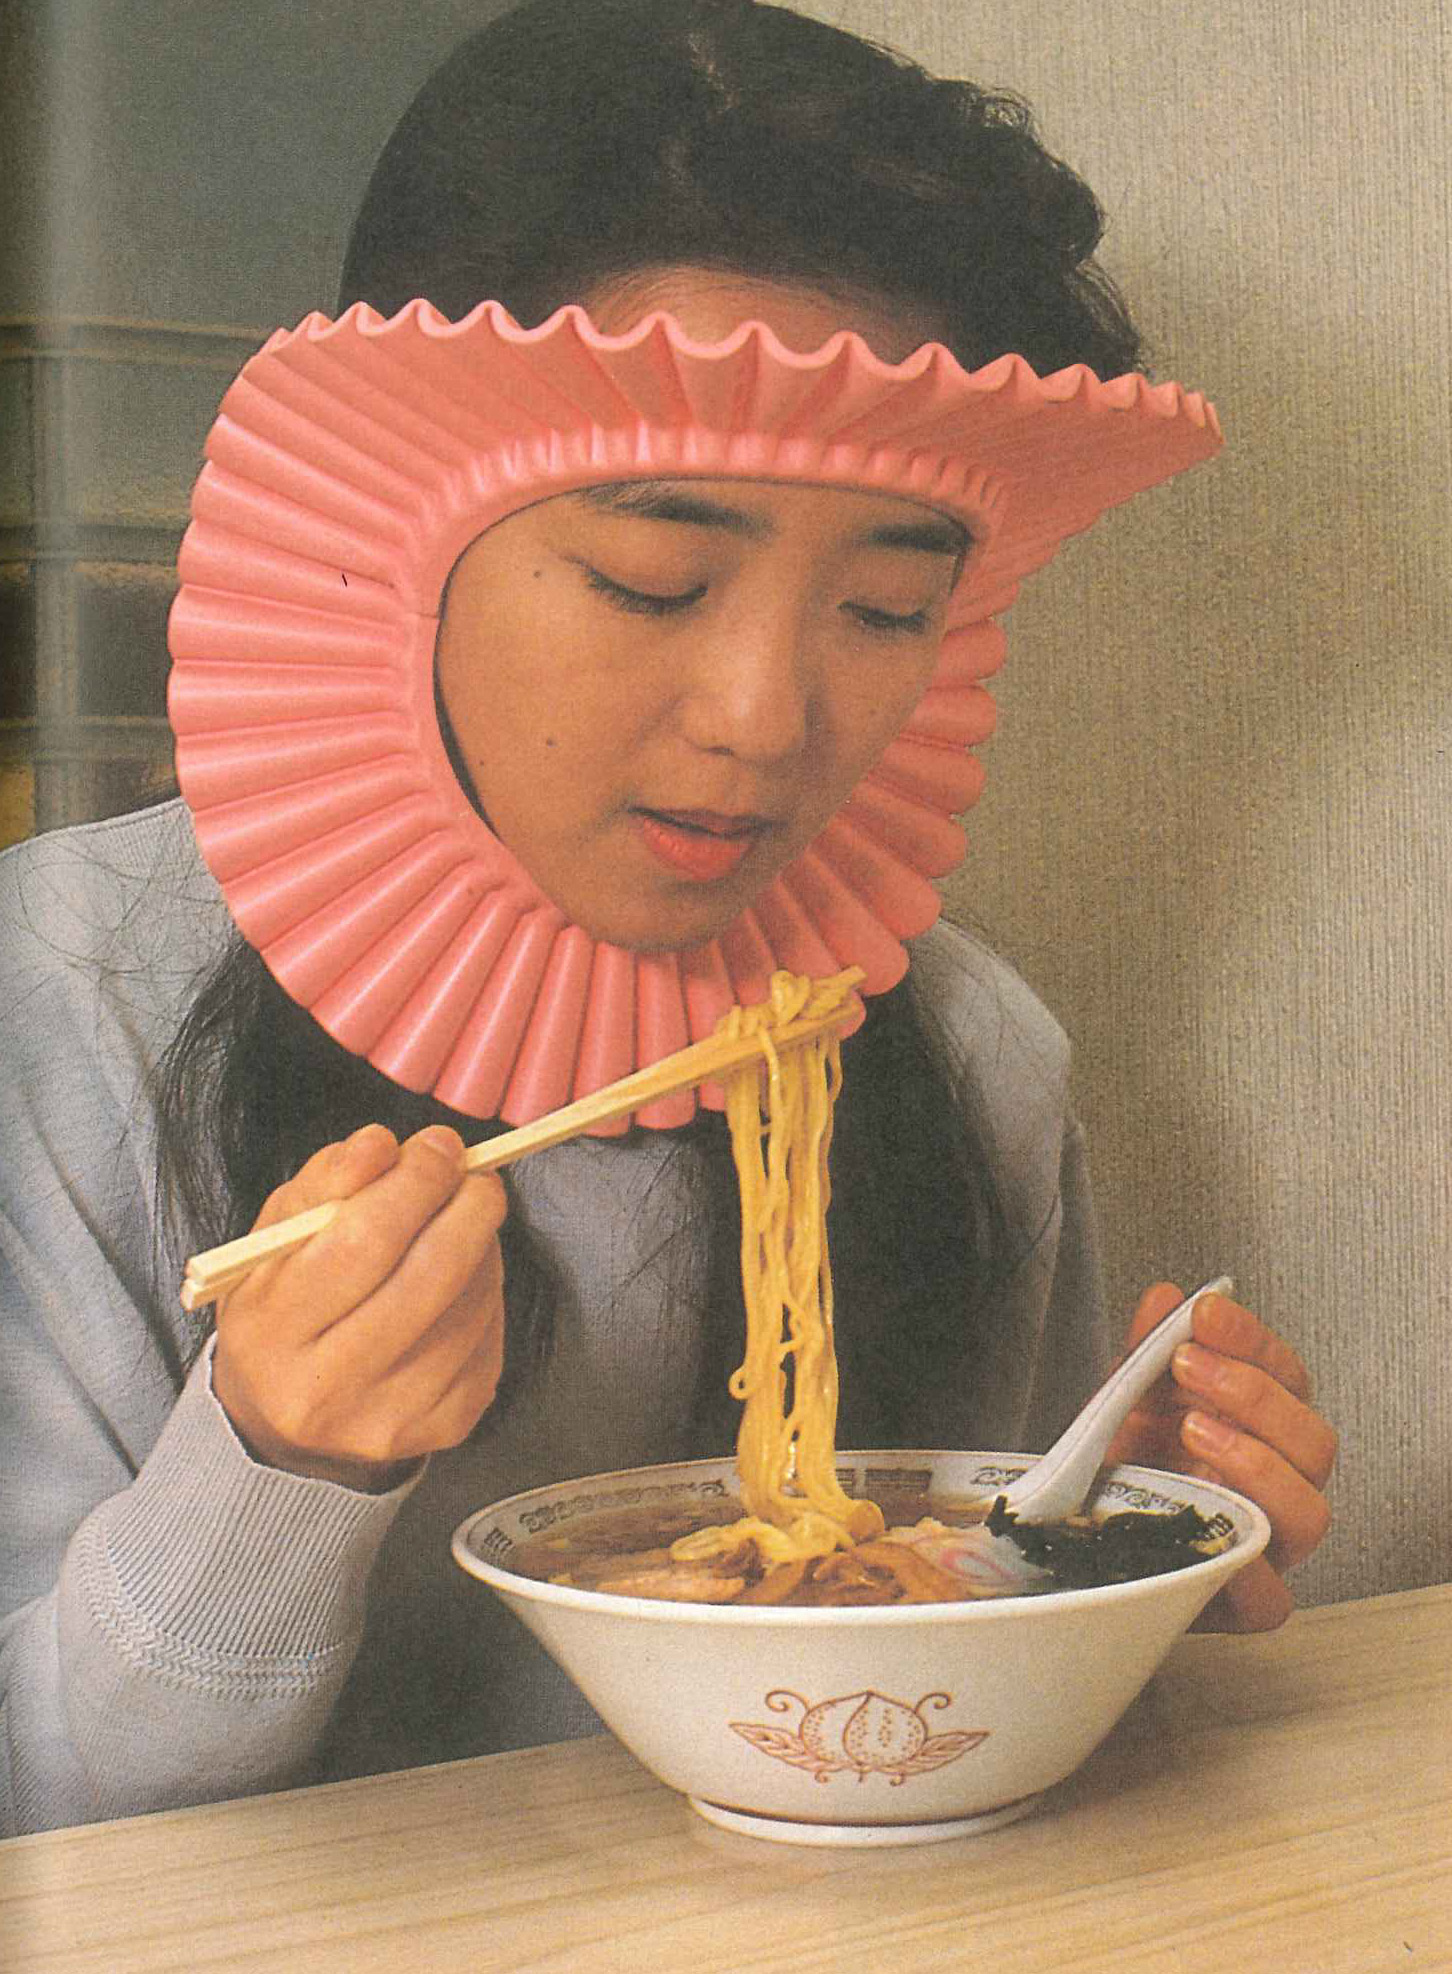 Chindogu Those Viral Japanese Inventions